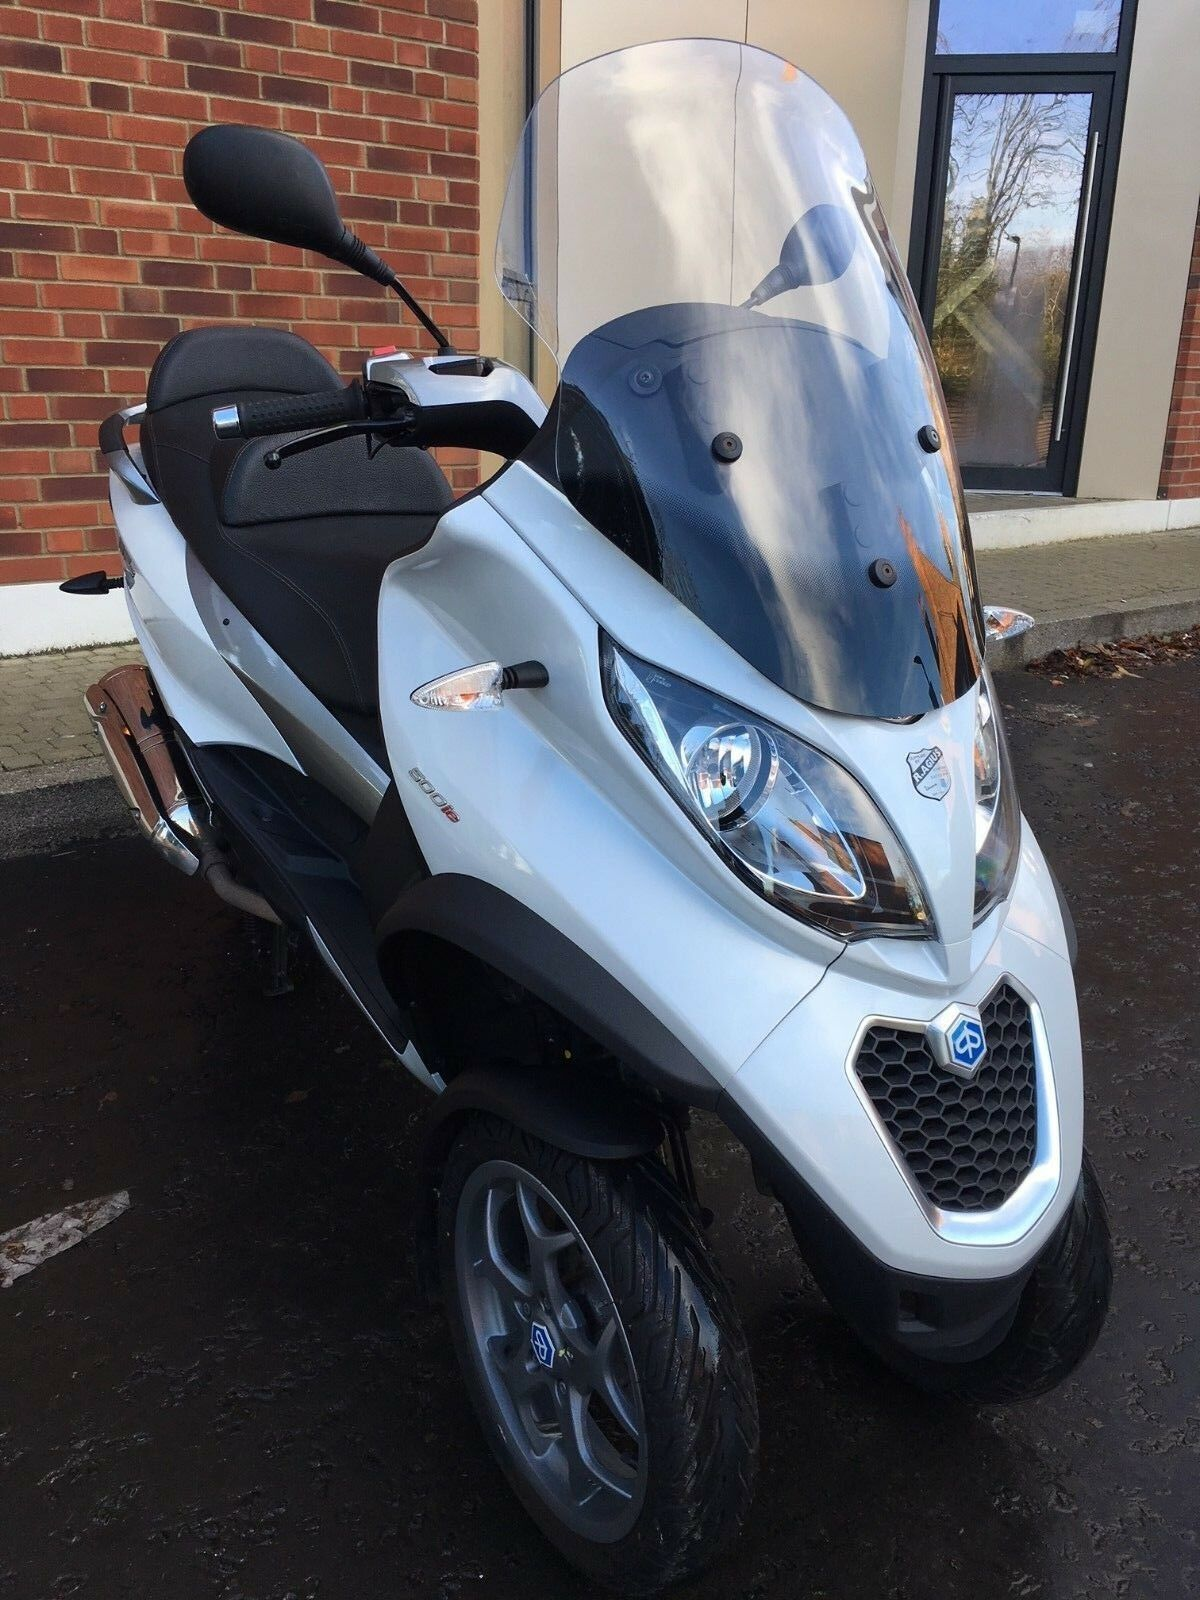 piaggio mp3 500 lt scooter tricyle abs 2016 low mileage heated grips cat 1 alarm 5. Black Bedroom Furniture Sets. Home Design Ideas